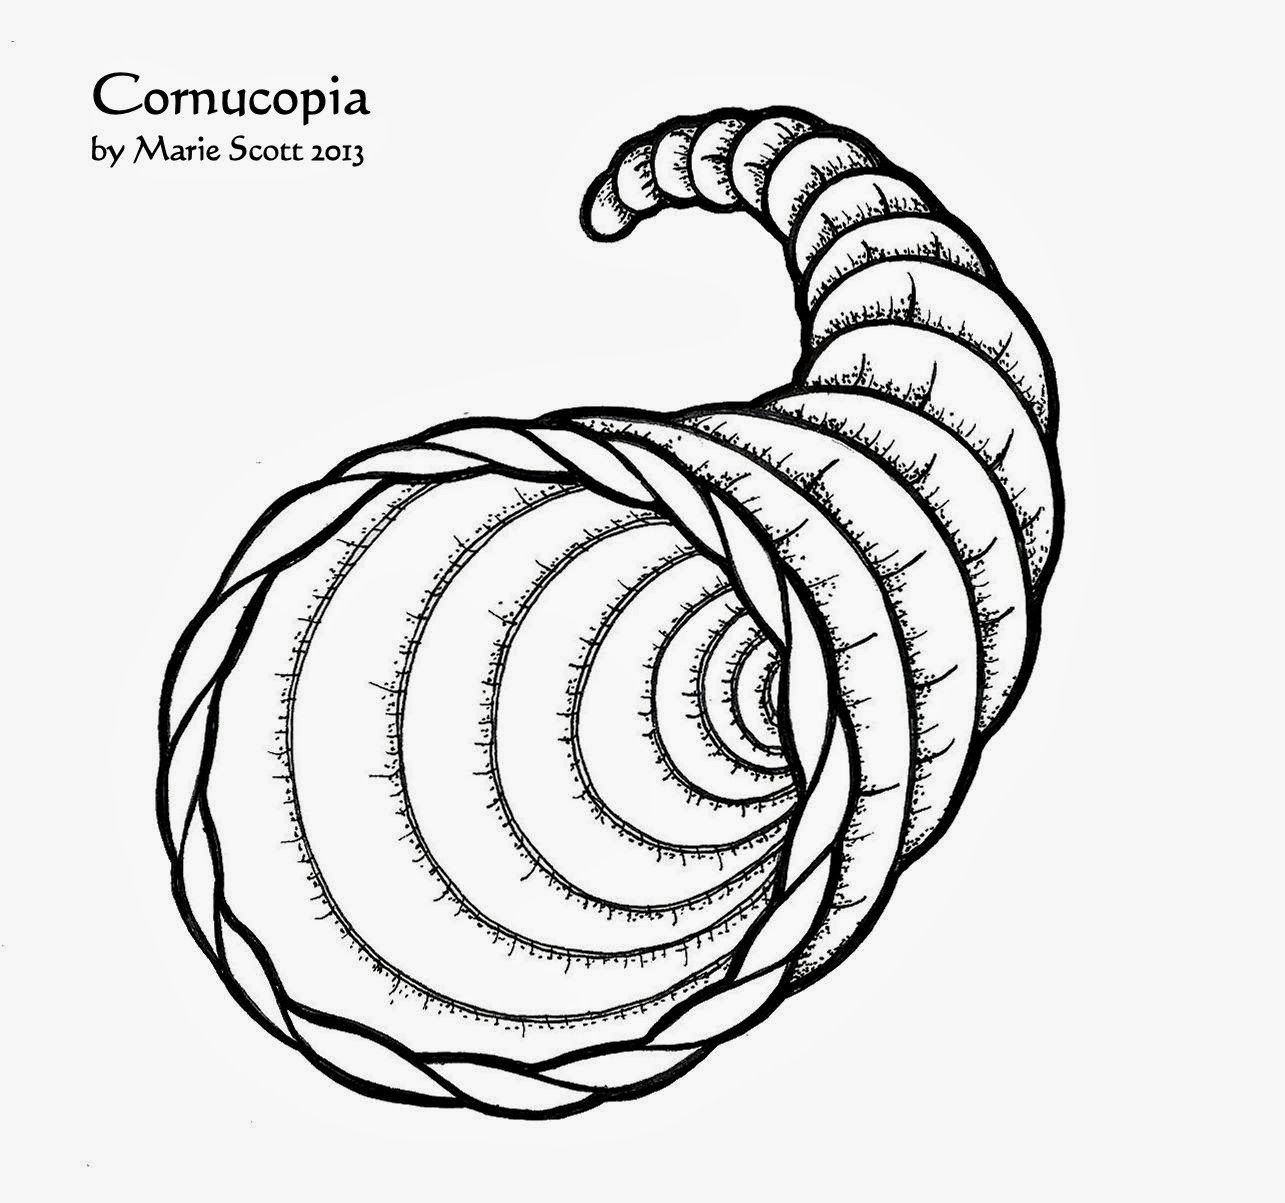 picture of cornucopia to color free printable cornucopia coloring pages coloring home of cornucopia to picture color